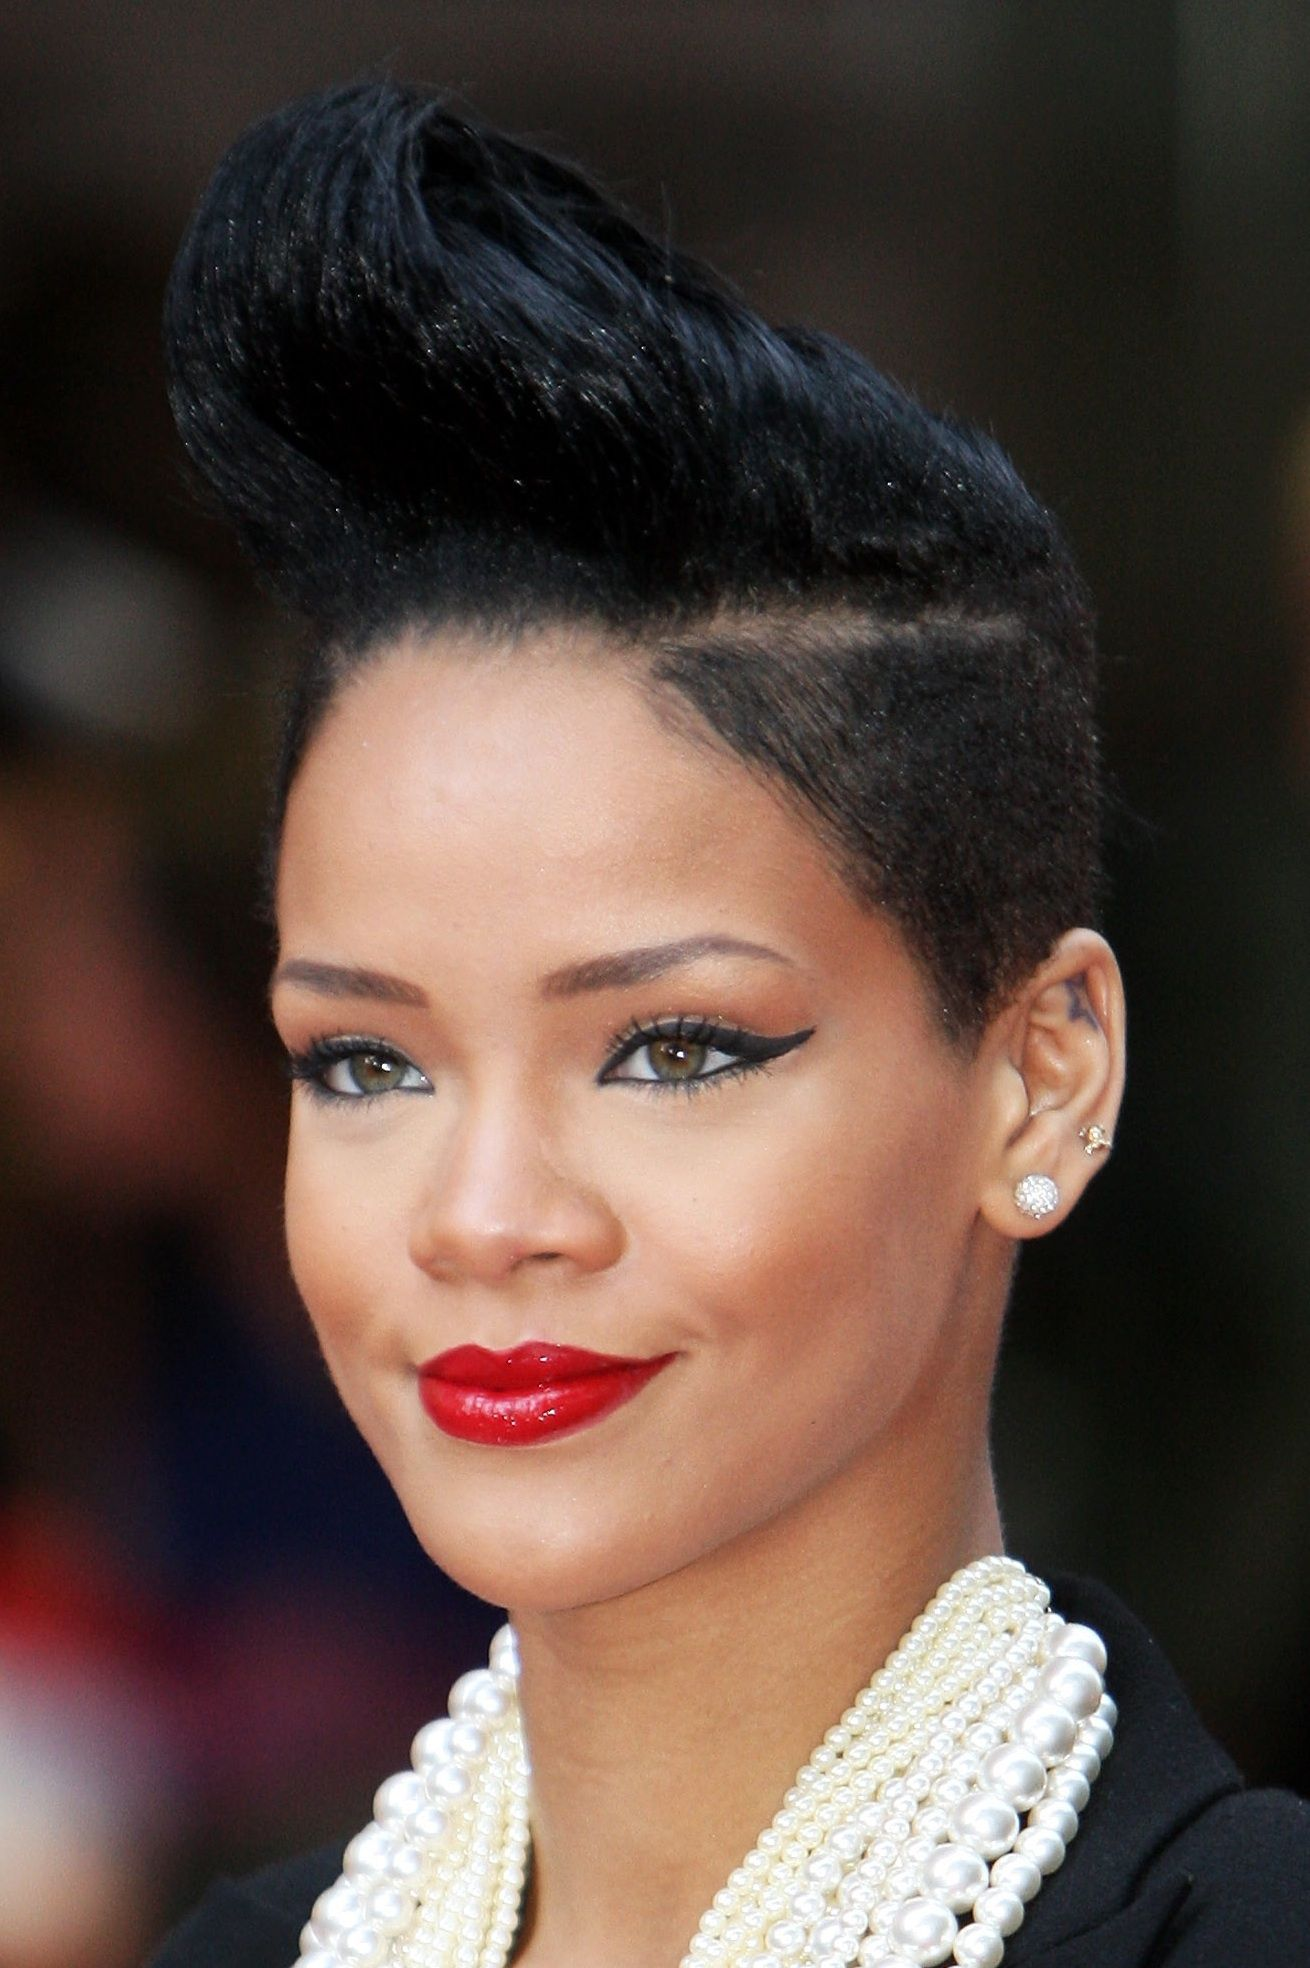 y Short Hairstyles for Black Women